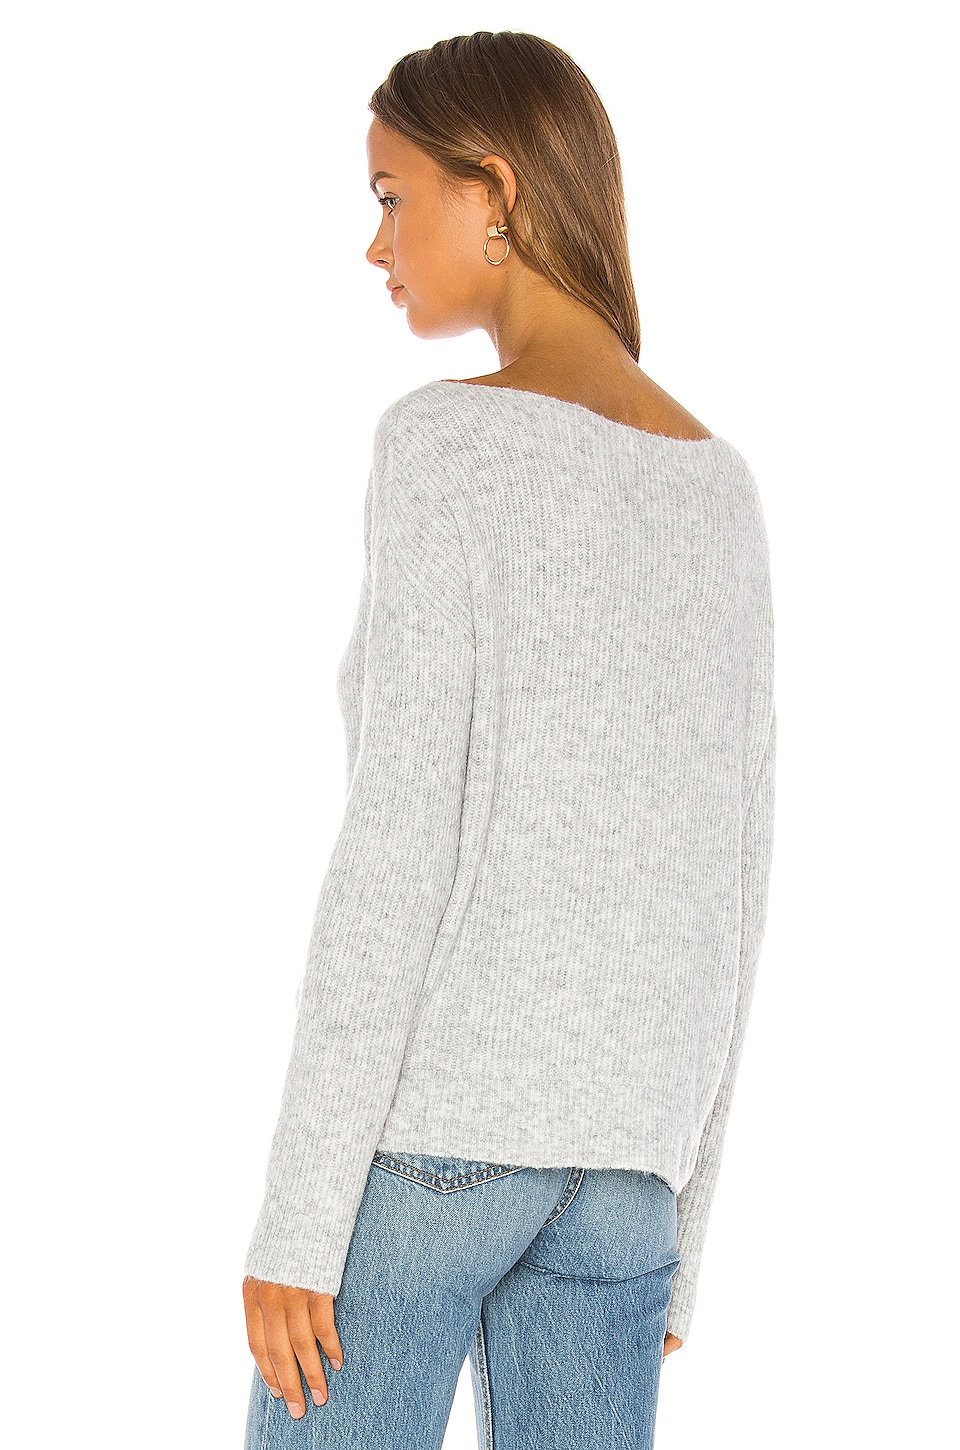 Alayah Off Shoulder Sweater, view 4, click to view large image.